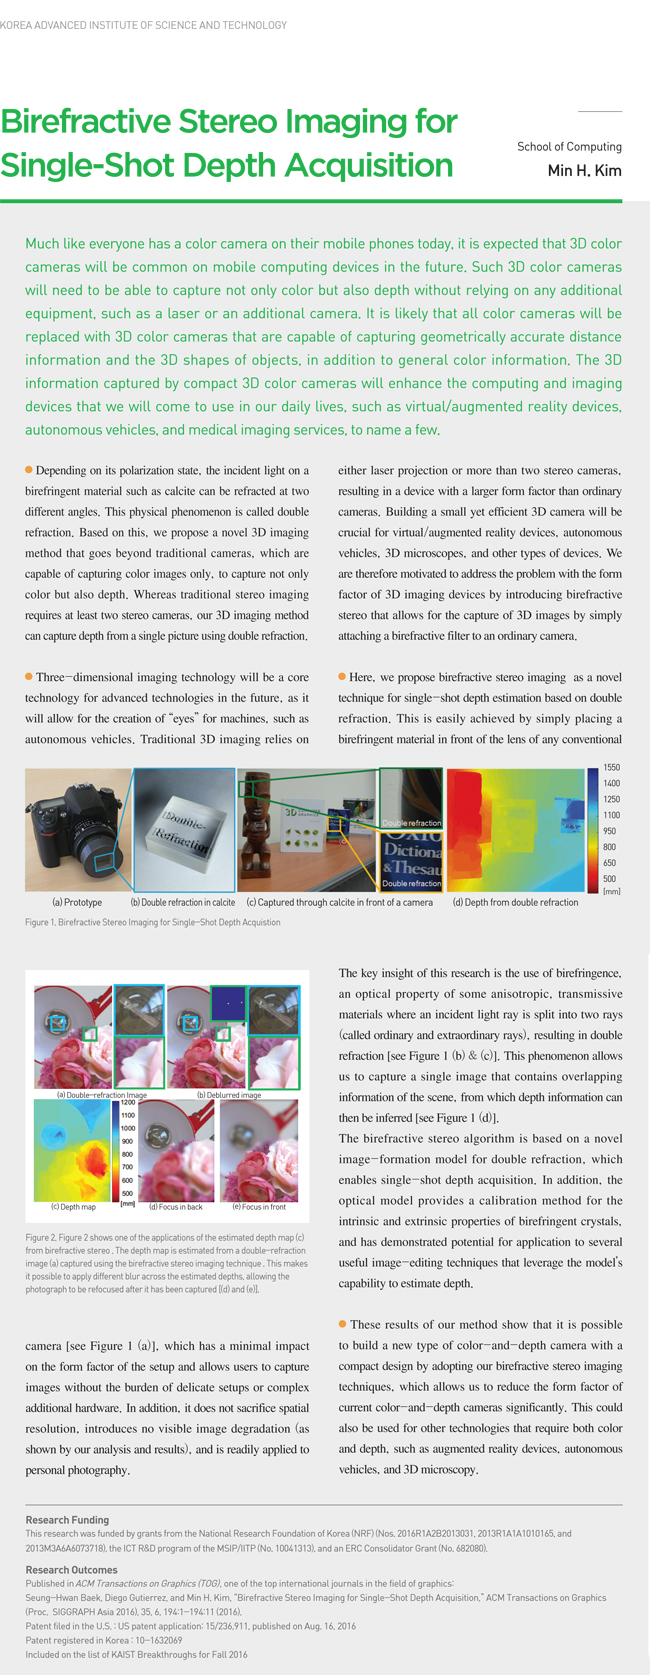 Birefractive stereo imaging for single-shot depth acquisition 이미지1